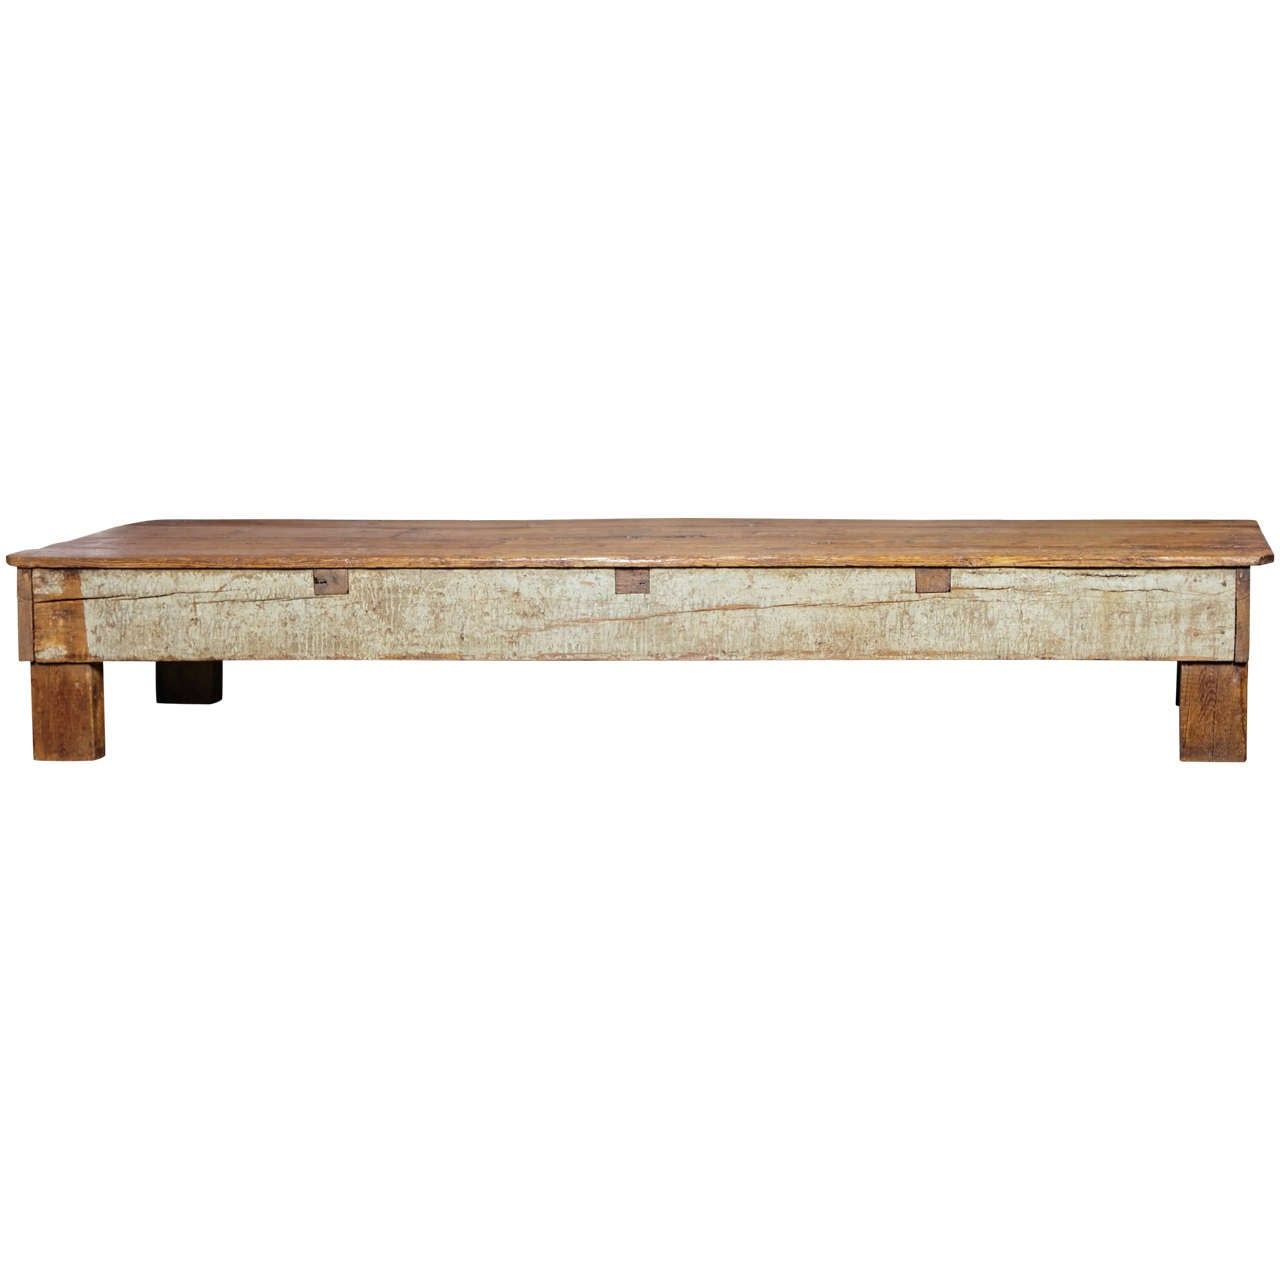 french shop pine bench used for long coffee table or low side